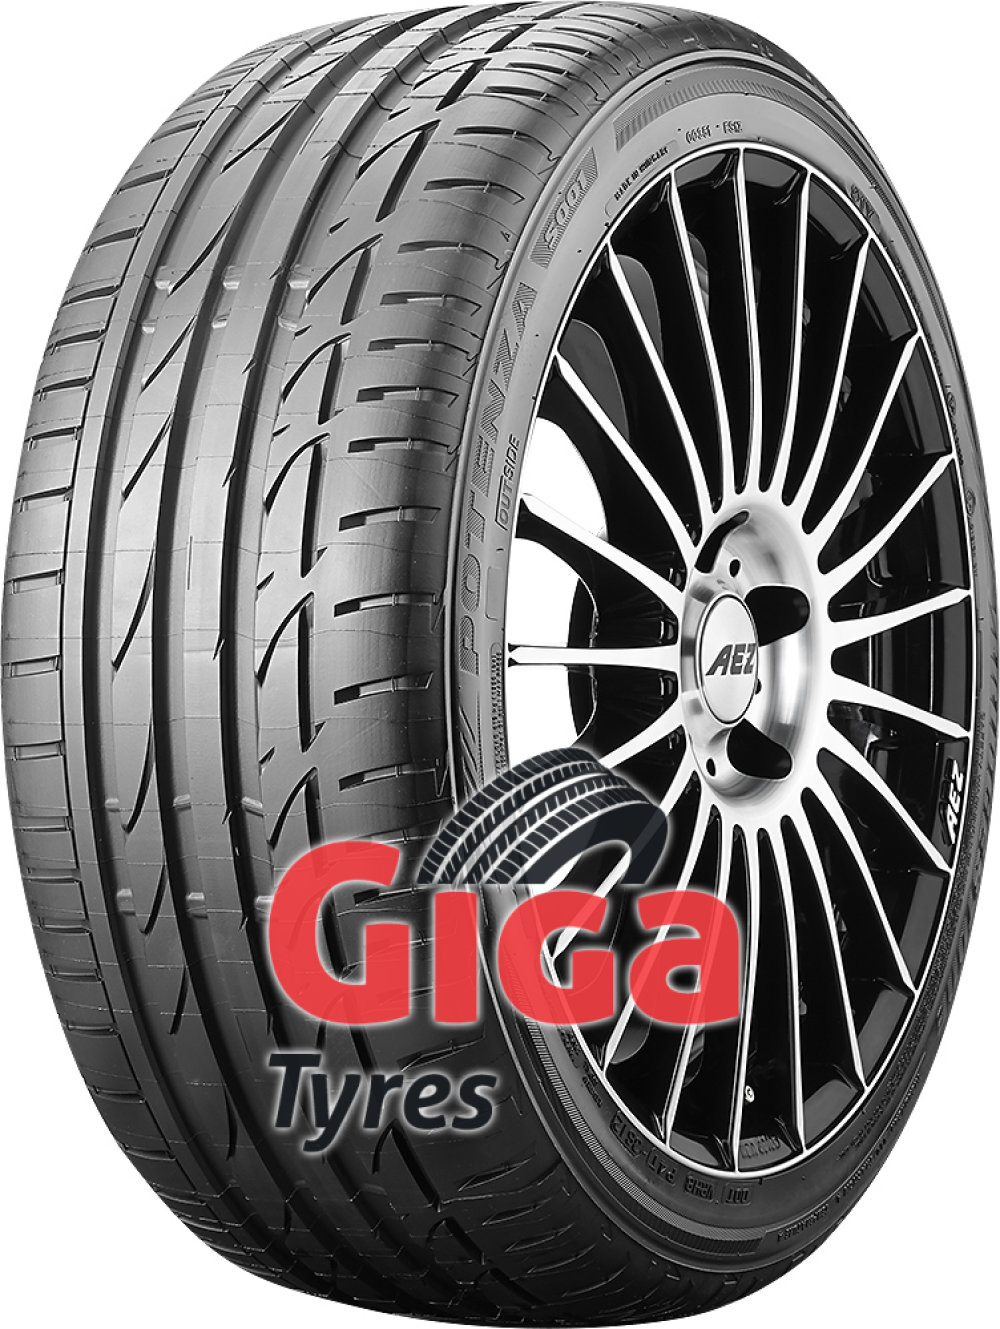 Bridgestone Potenza S001 ( 245/45 R18 100Y XL with rim protection (MFS) )